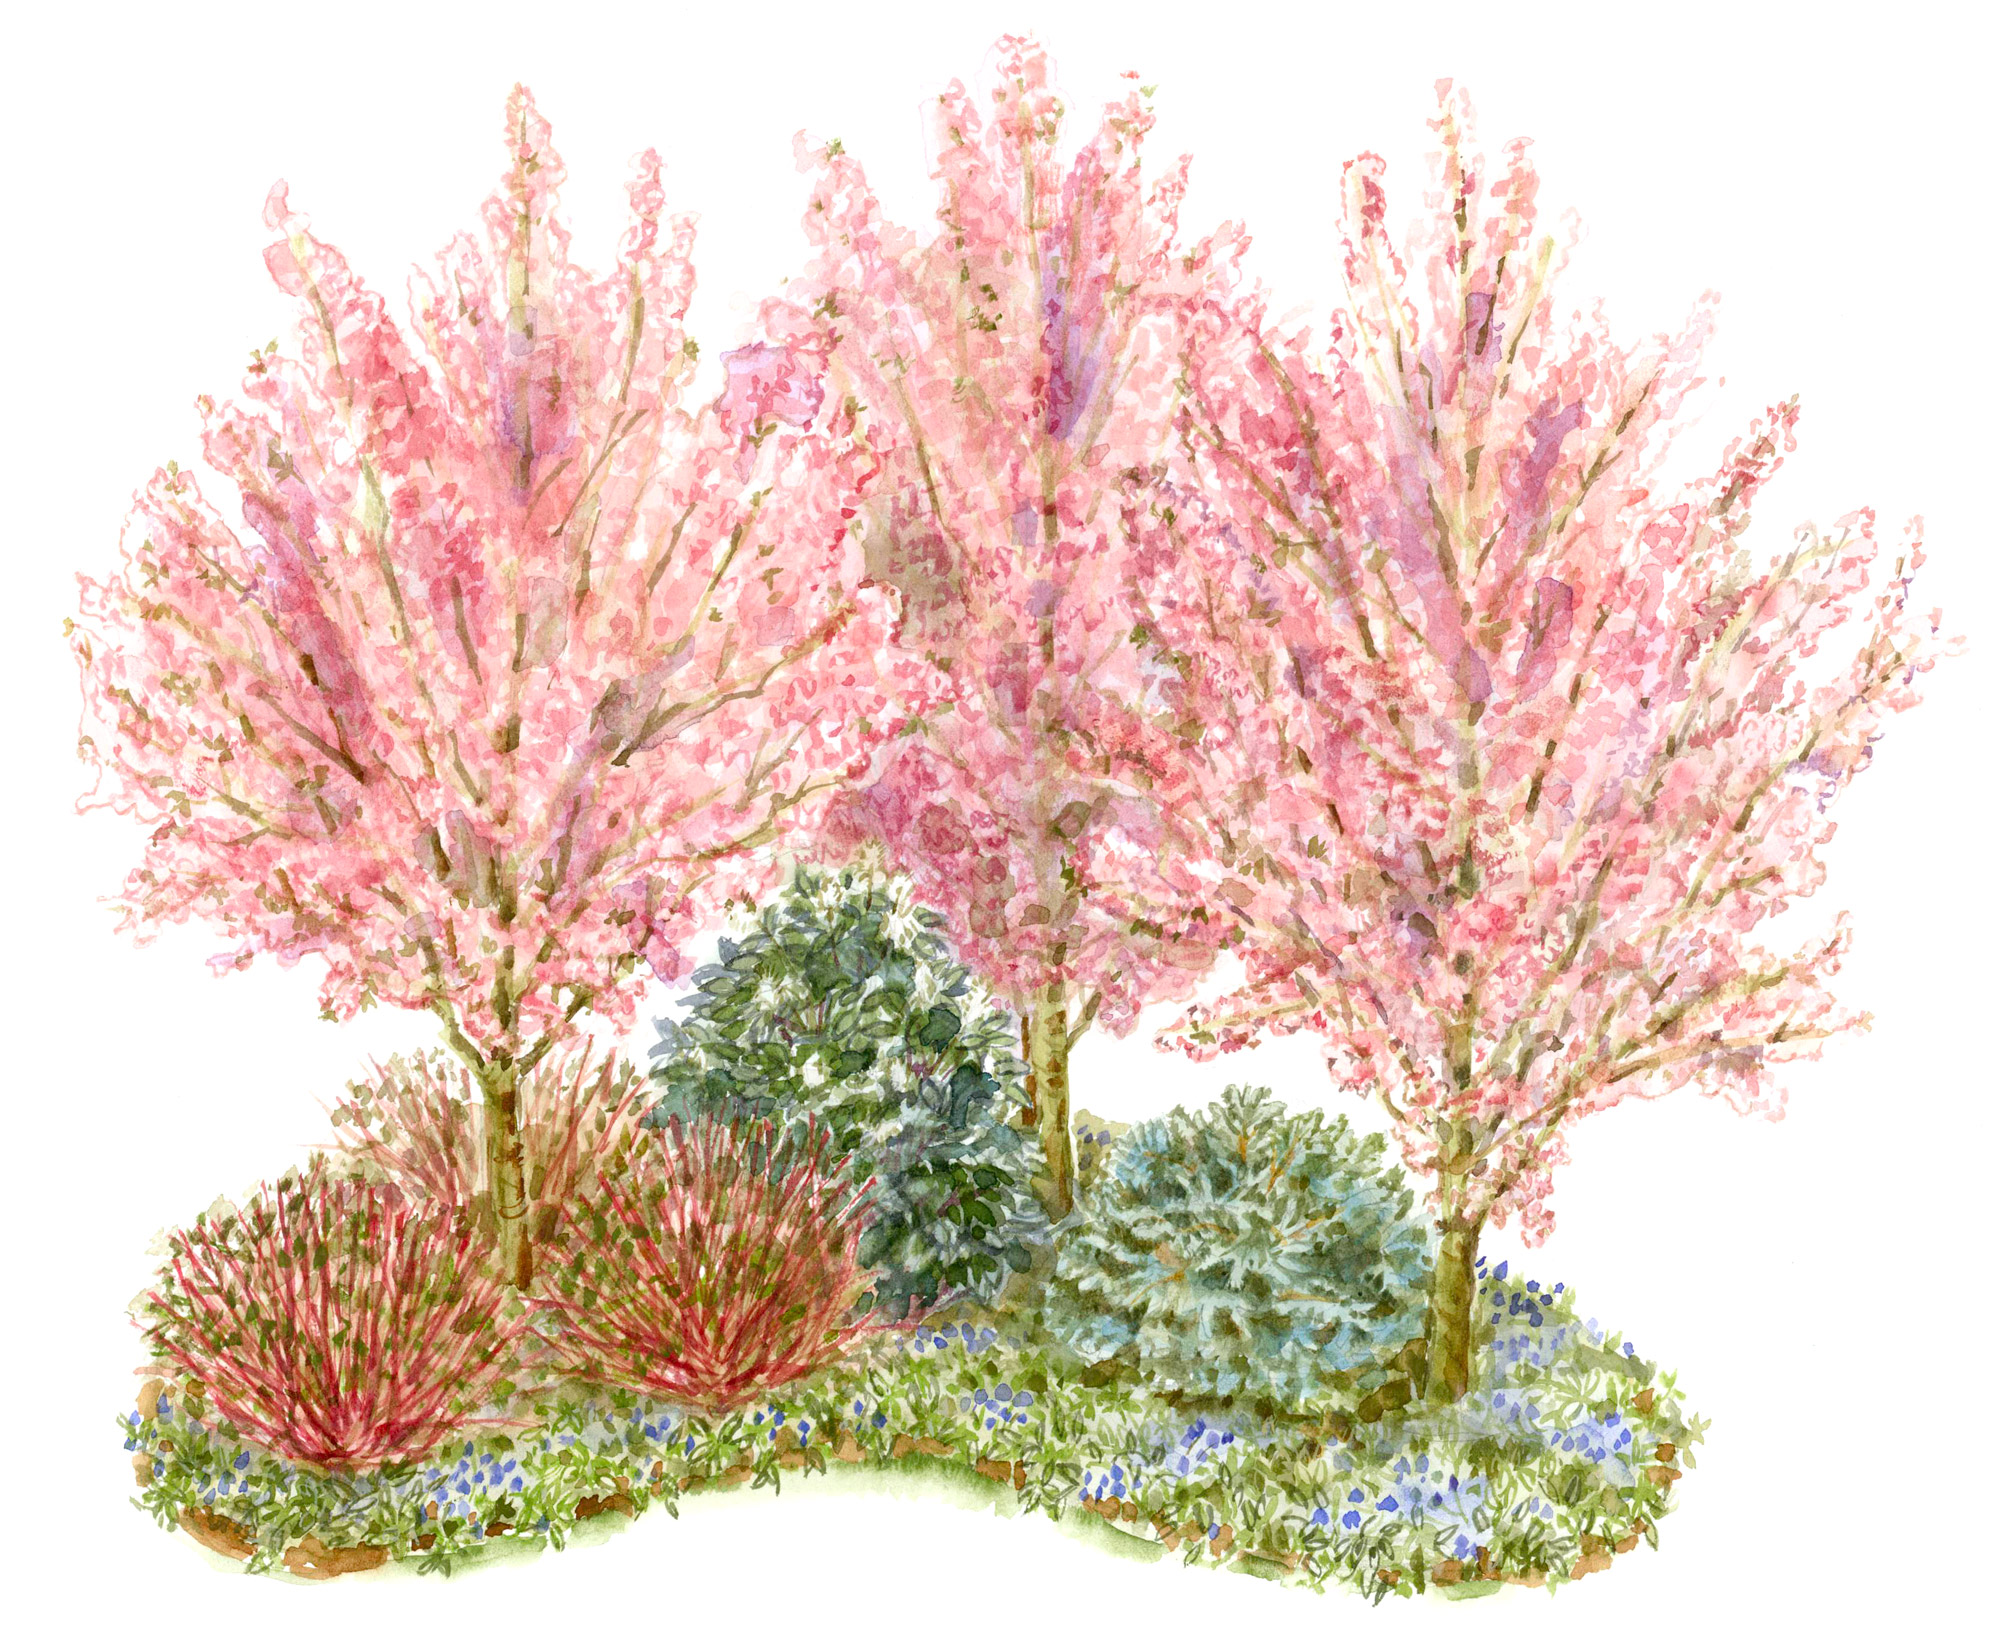 Corner of Shrubs garden illustration